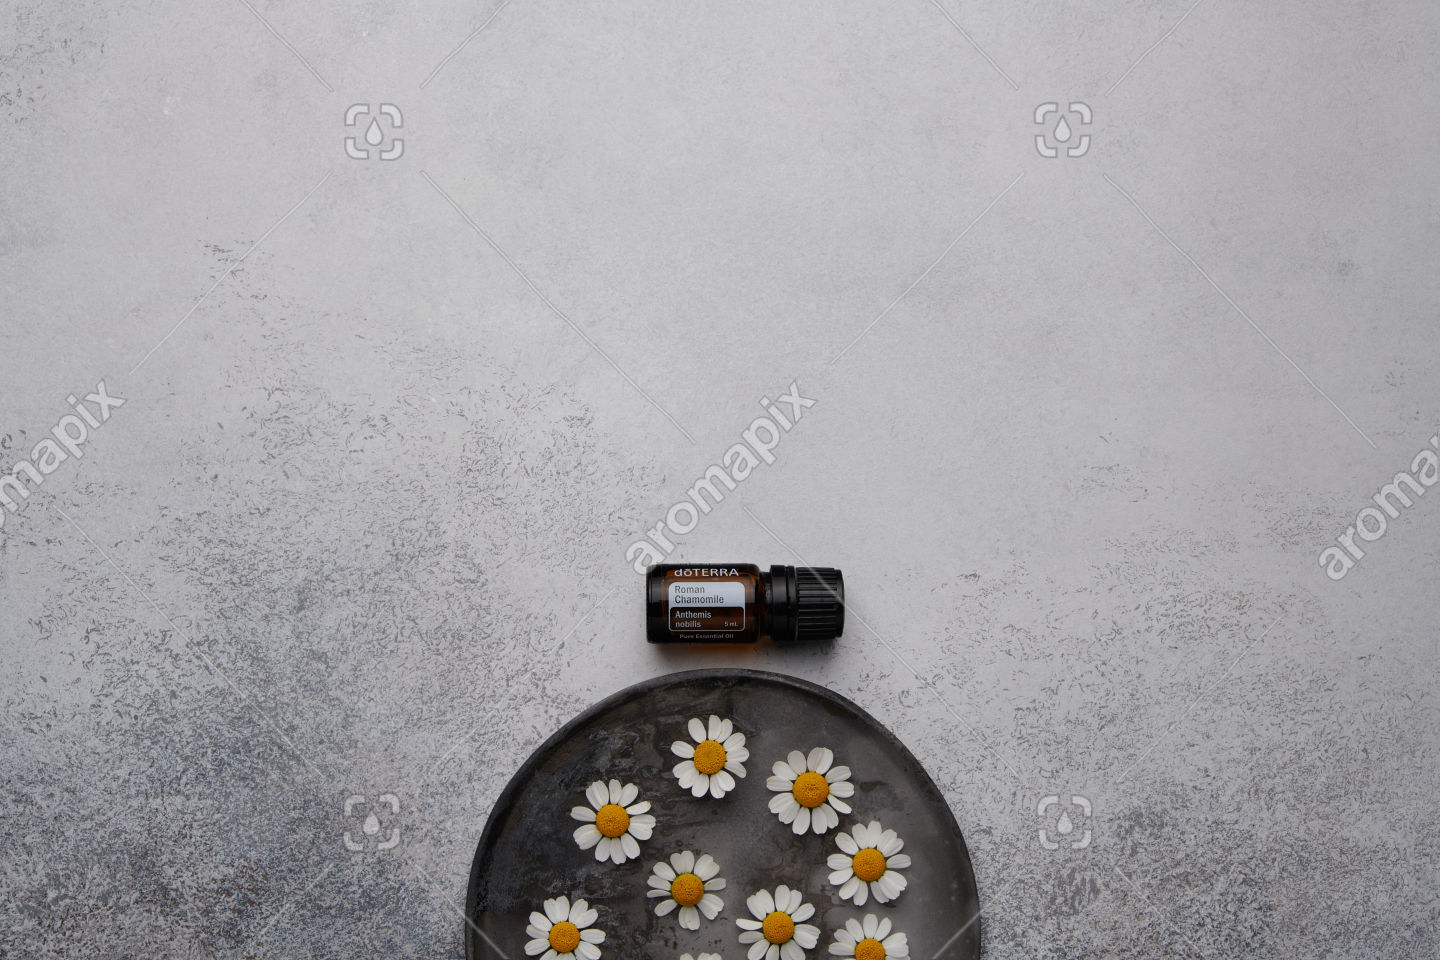 doTERRA Roman Chamomile with chamomile flowers on white